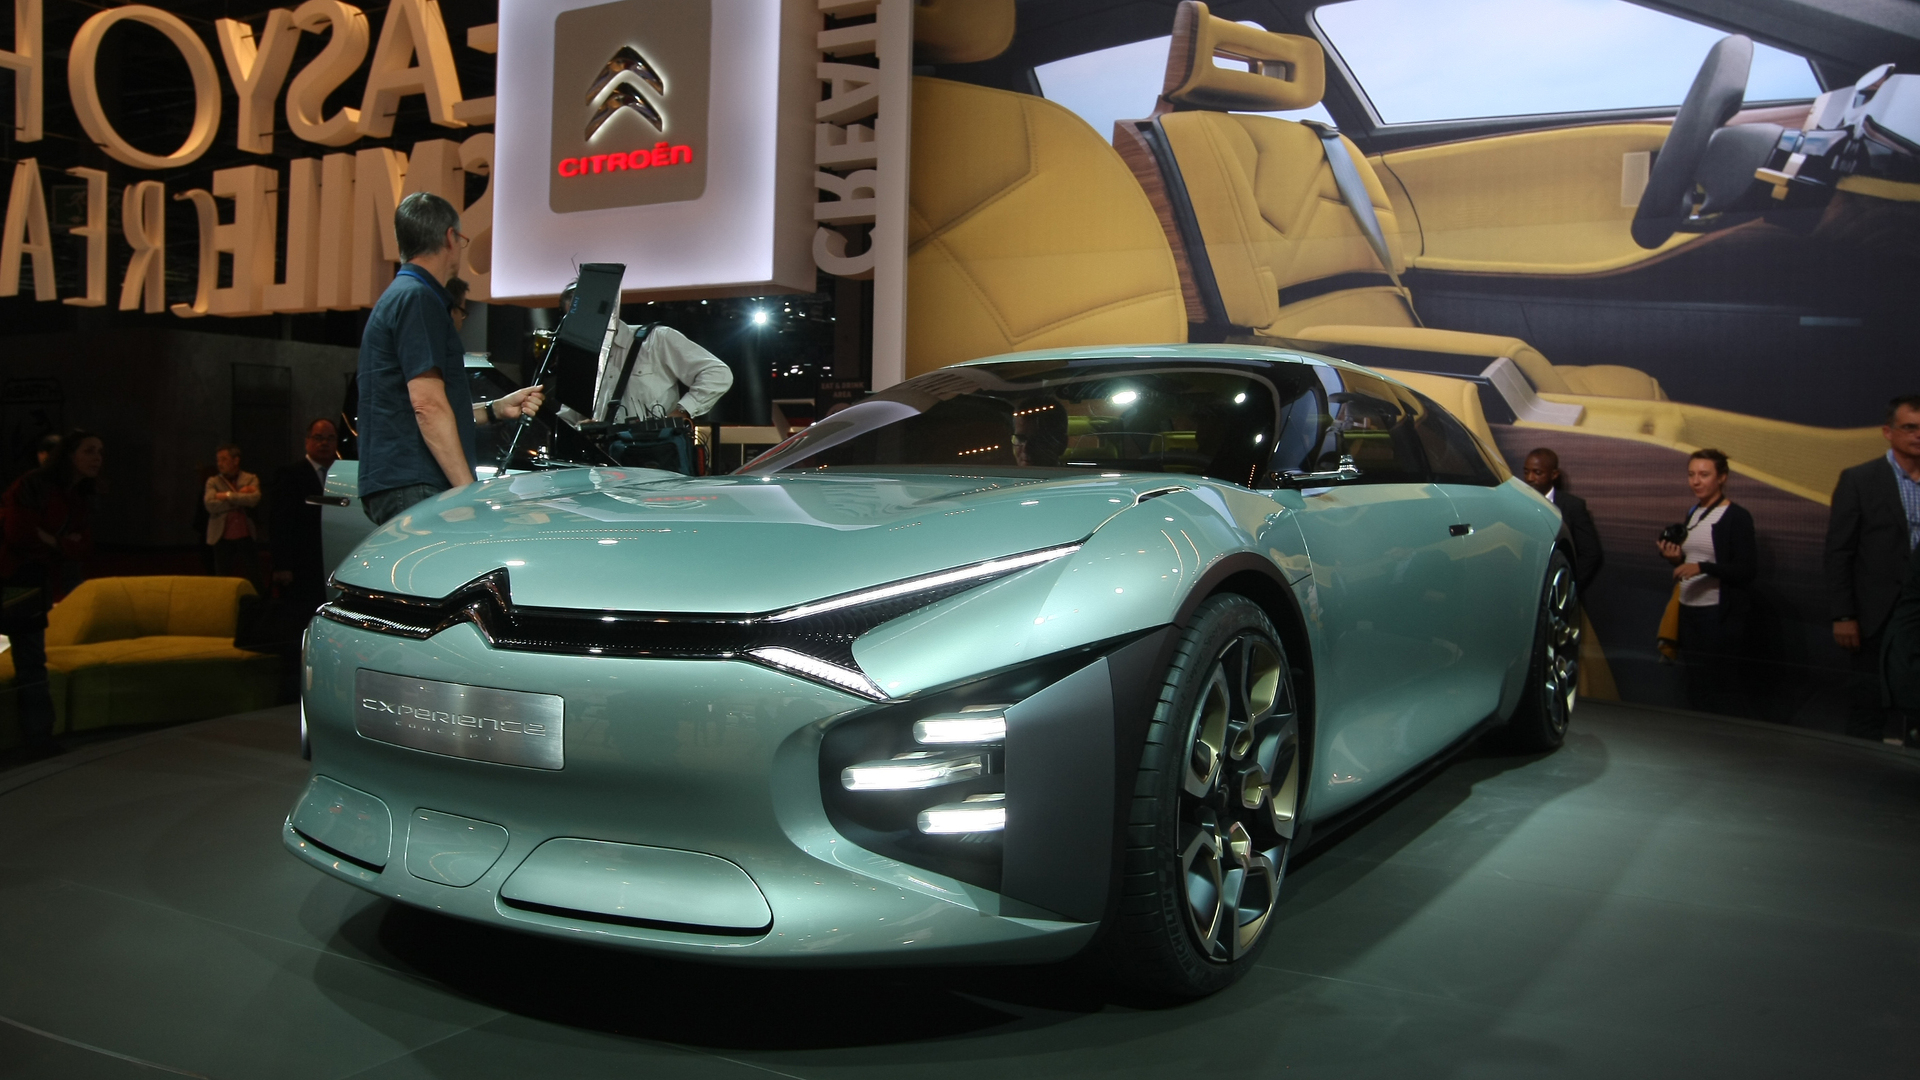 Citroen Cxperience Concept shows bold look for potential C5 replacement